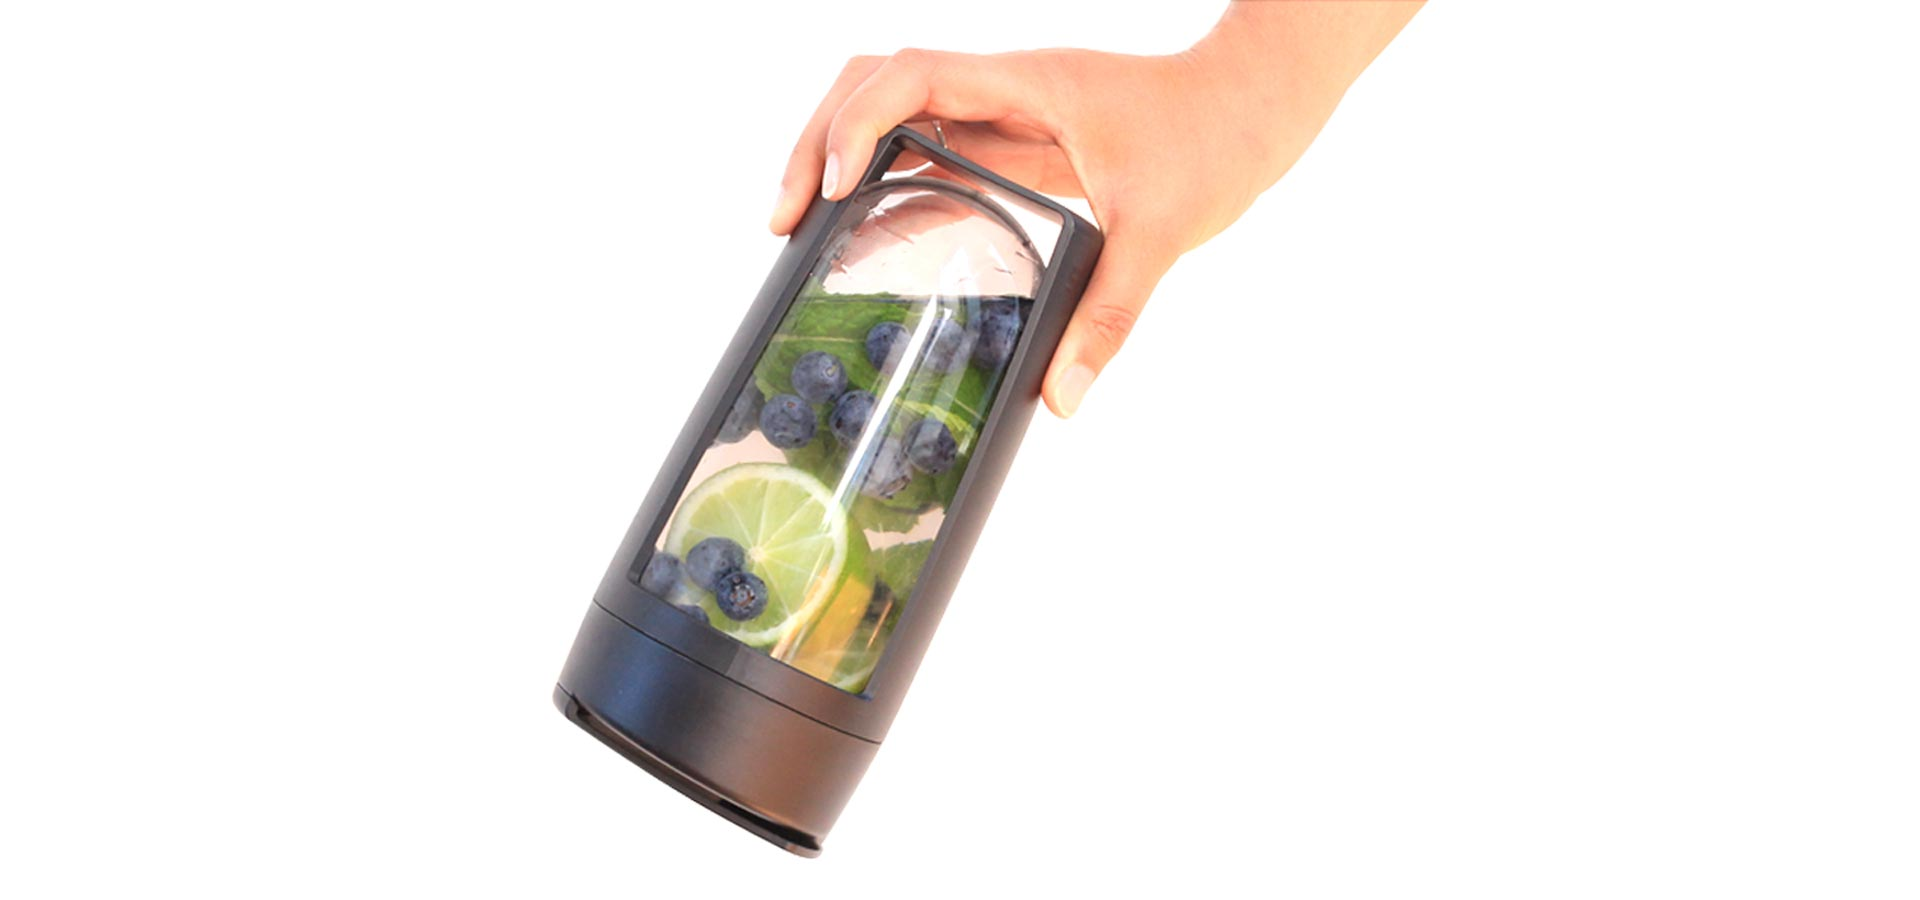 fruit infuse waters with the mous water infuser it's leak proof